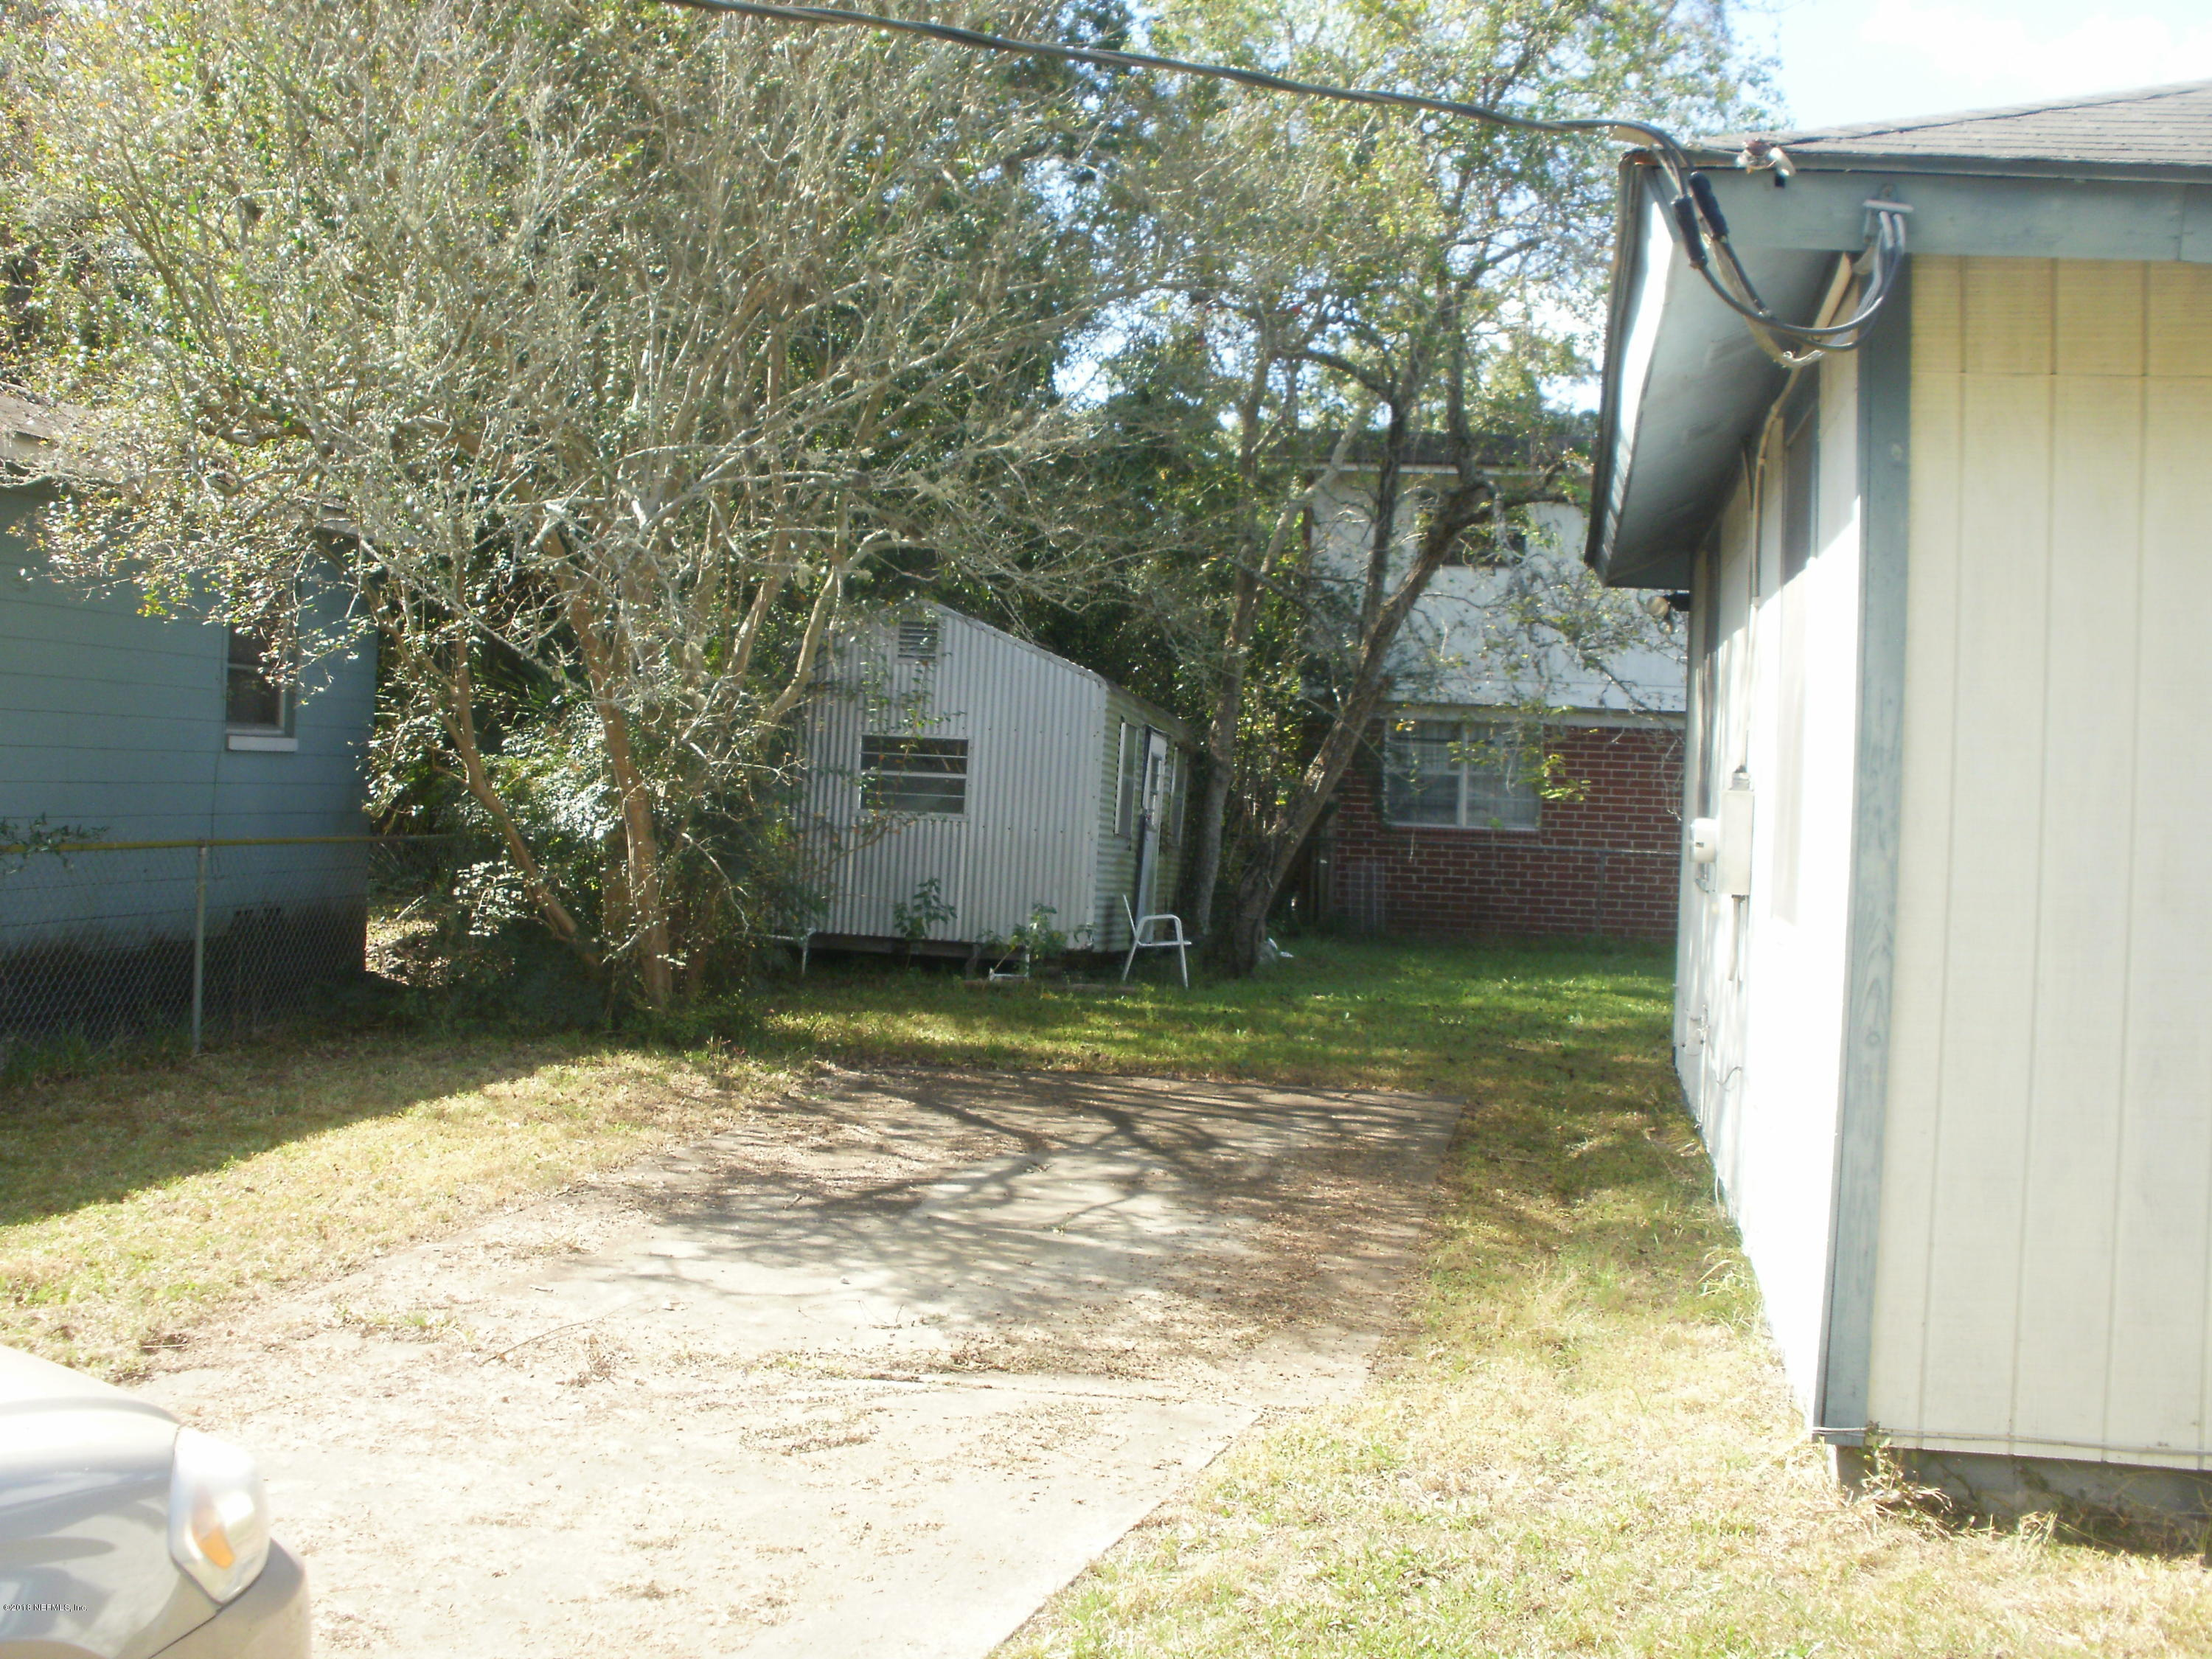 1926 SPIRES, JACKSONVILLE, FLORIDA 32209, 3 Bedrooms Bedrooms, ,1 BathroomBathrooms,Residential - single family,For sale,SPIRES,964842